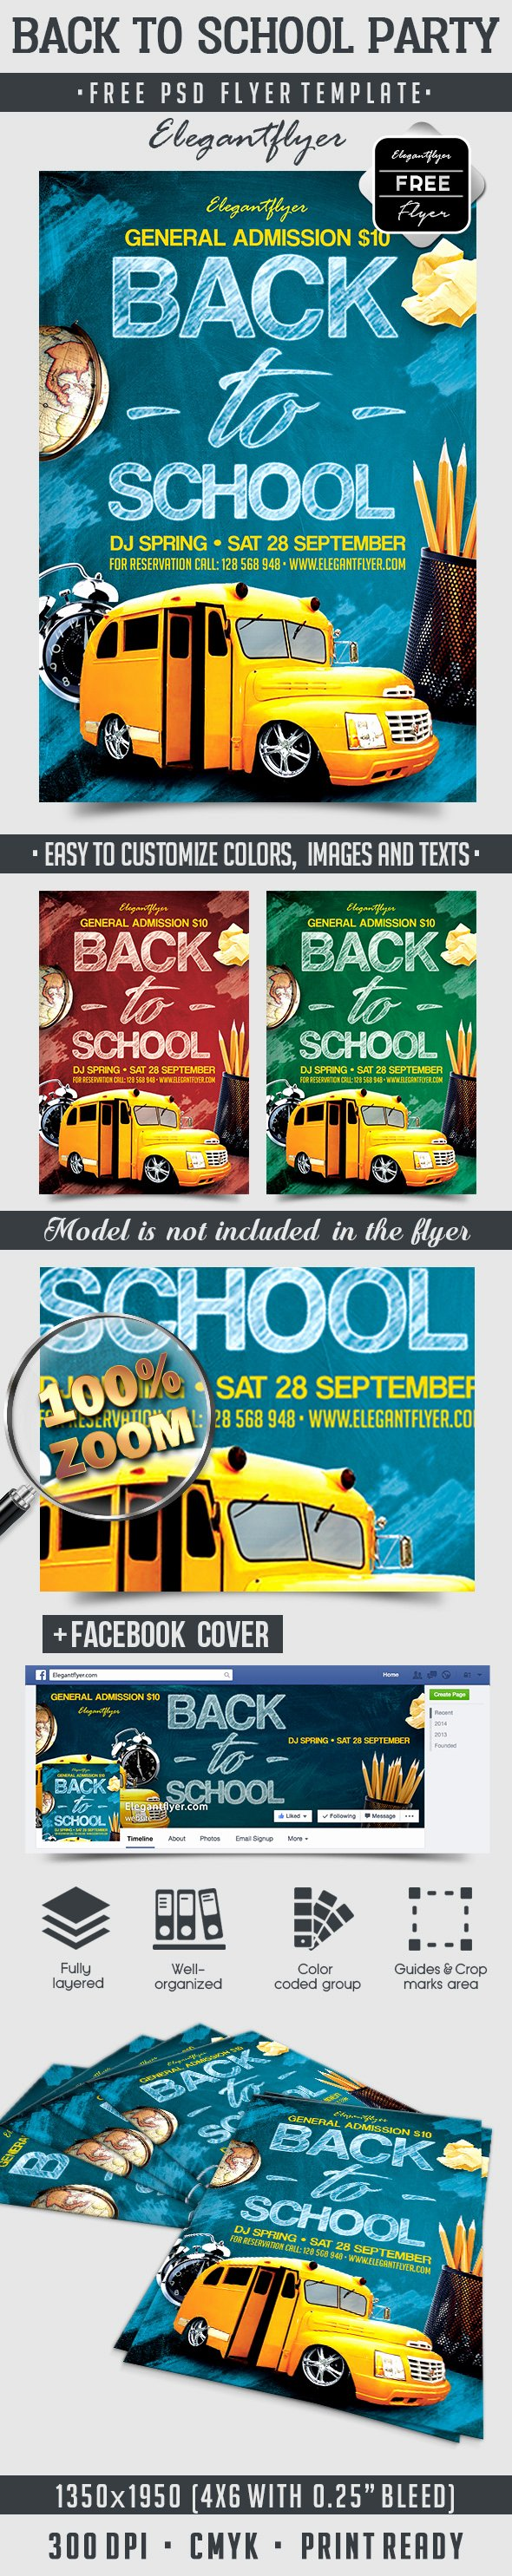 School Flyer Template Free Best Of Back to School Party – Free Flyer Psd Template – by